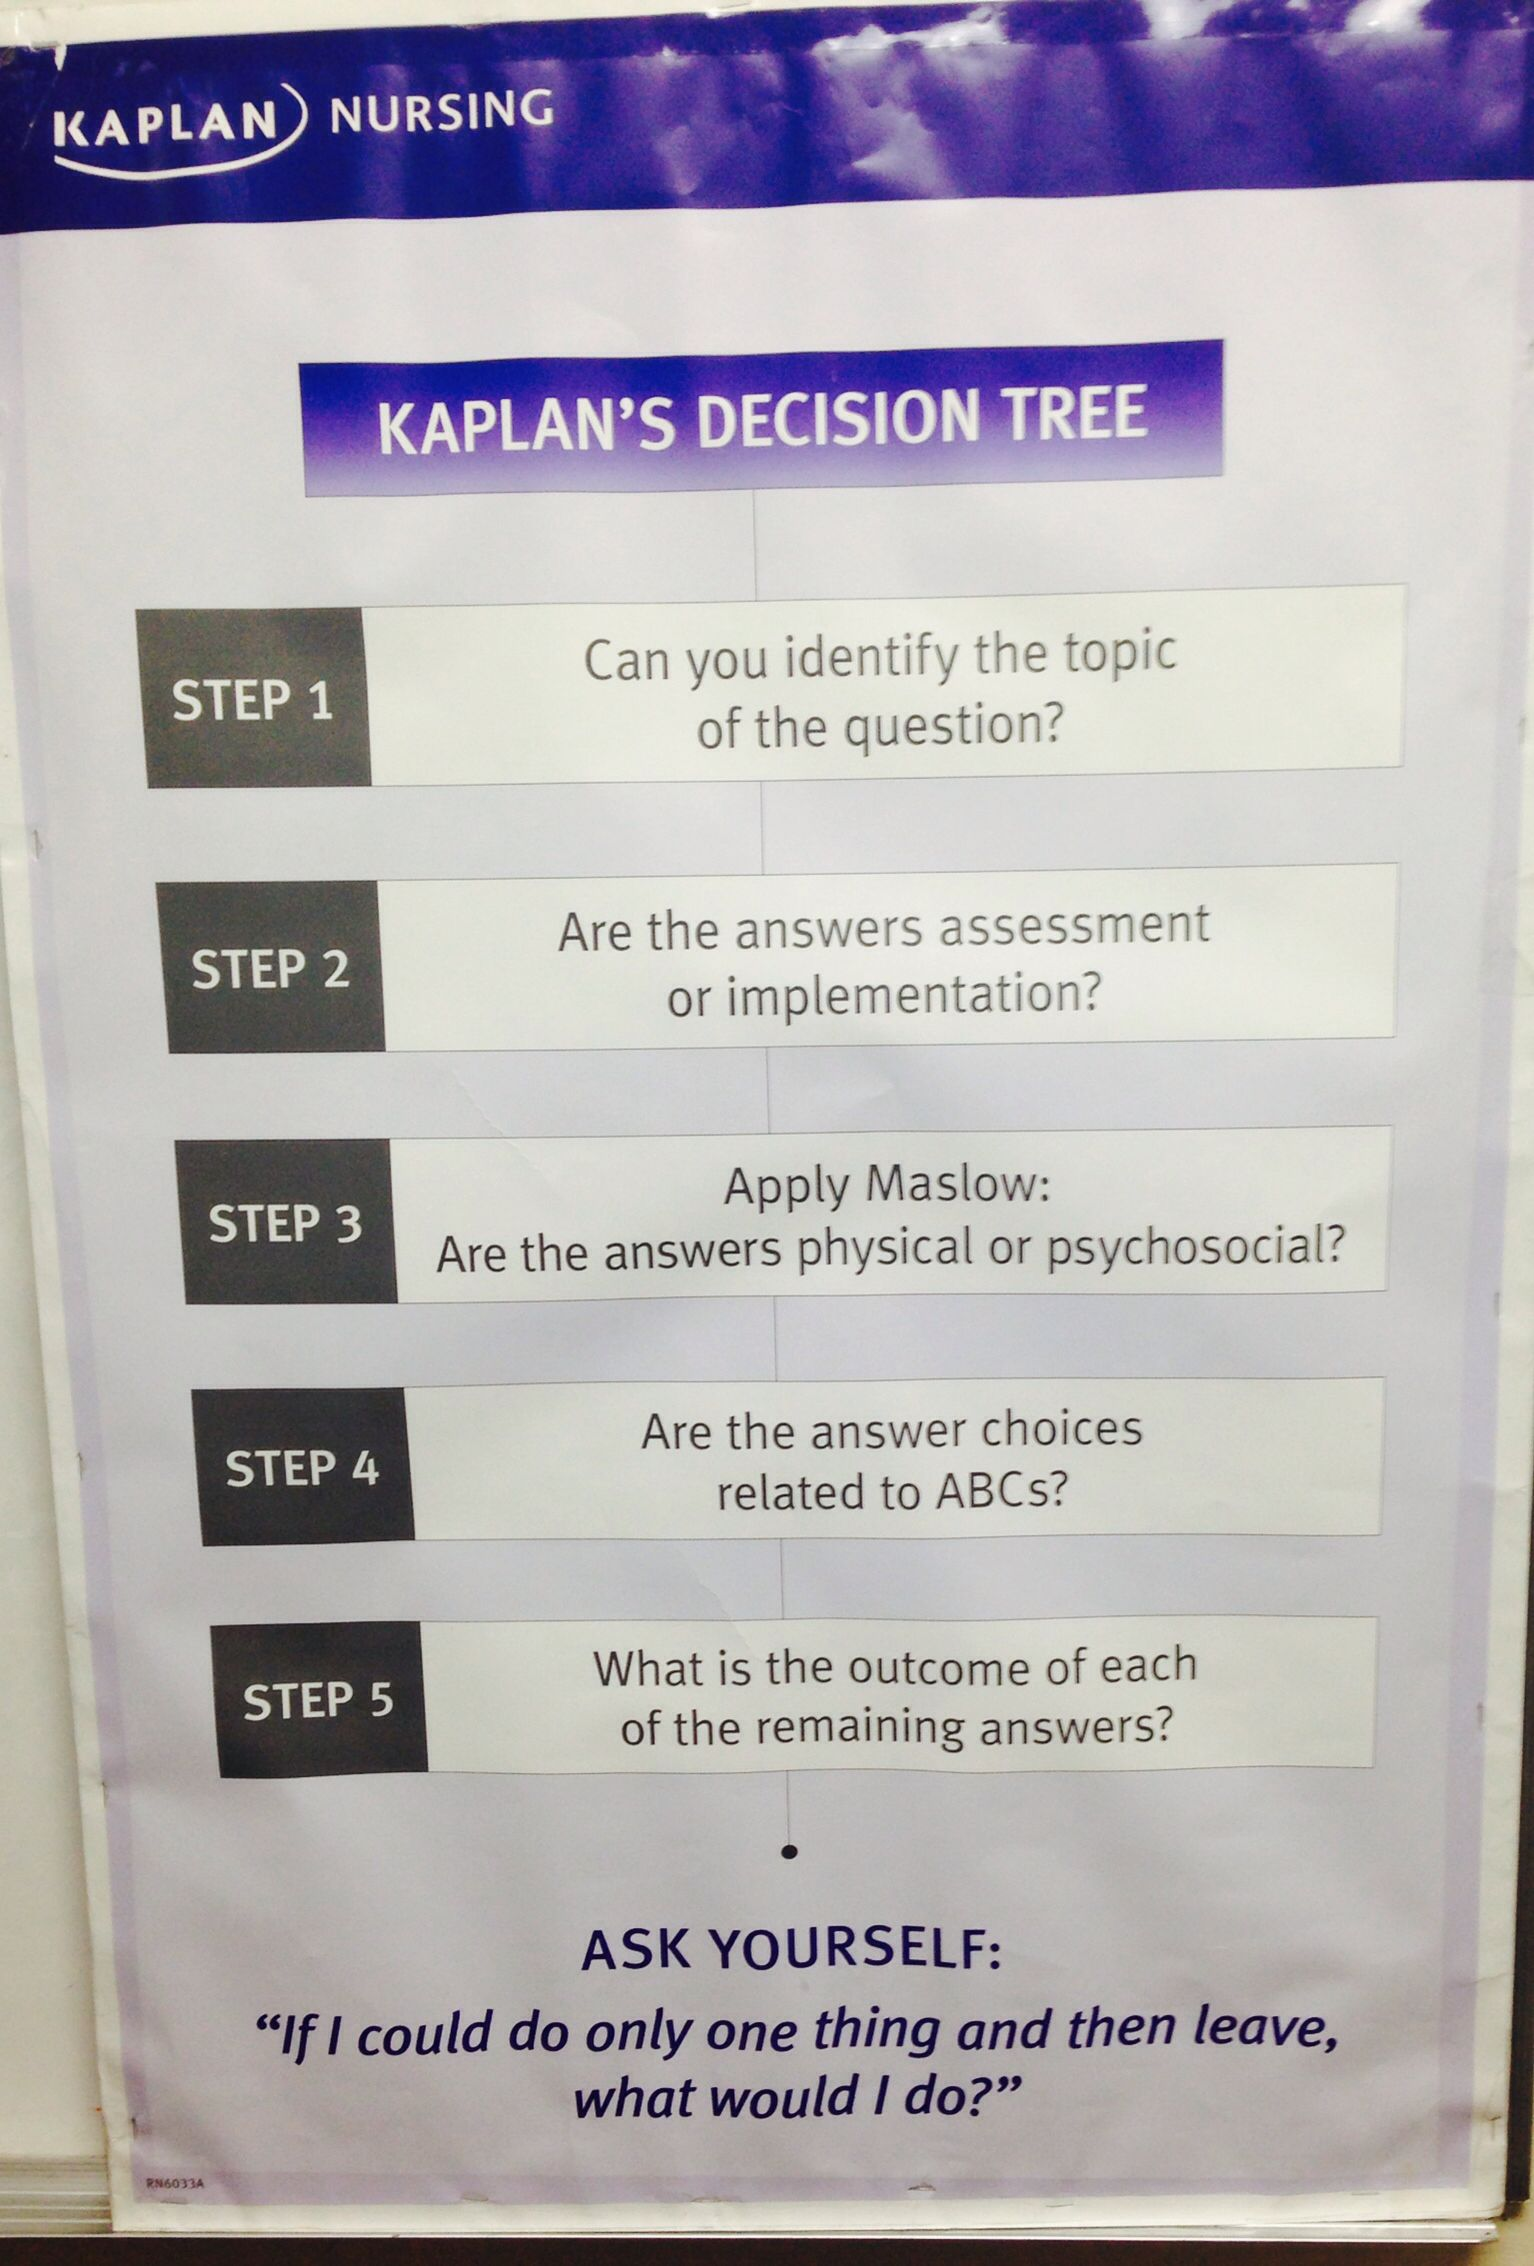 kaplan decision tree - - Yahoo Image Search Results | Nursing and ...